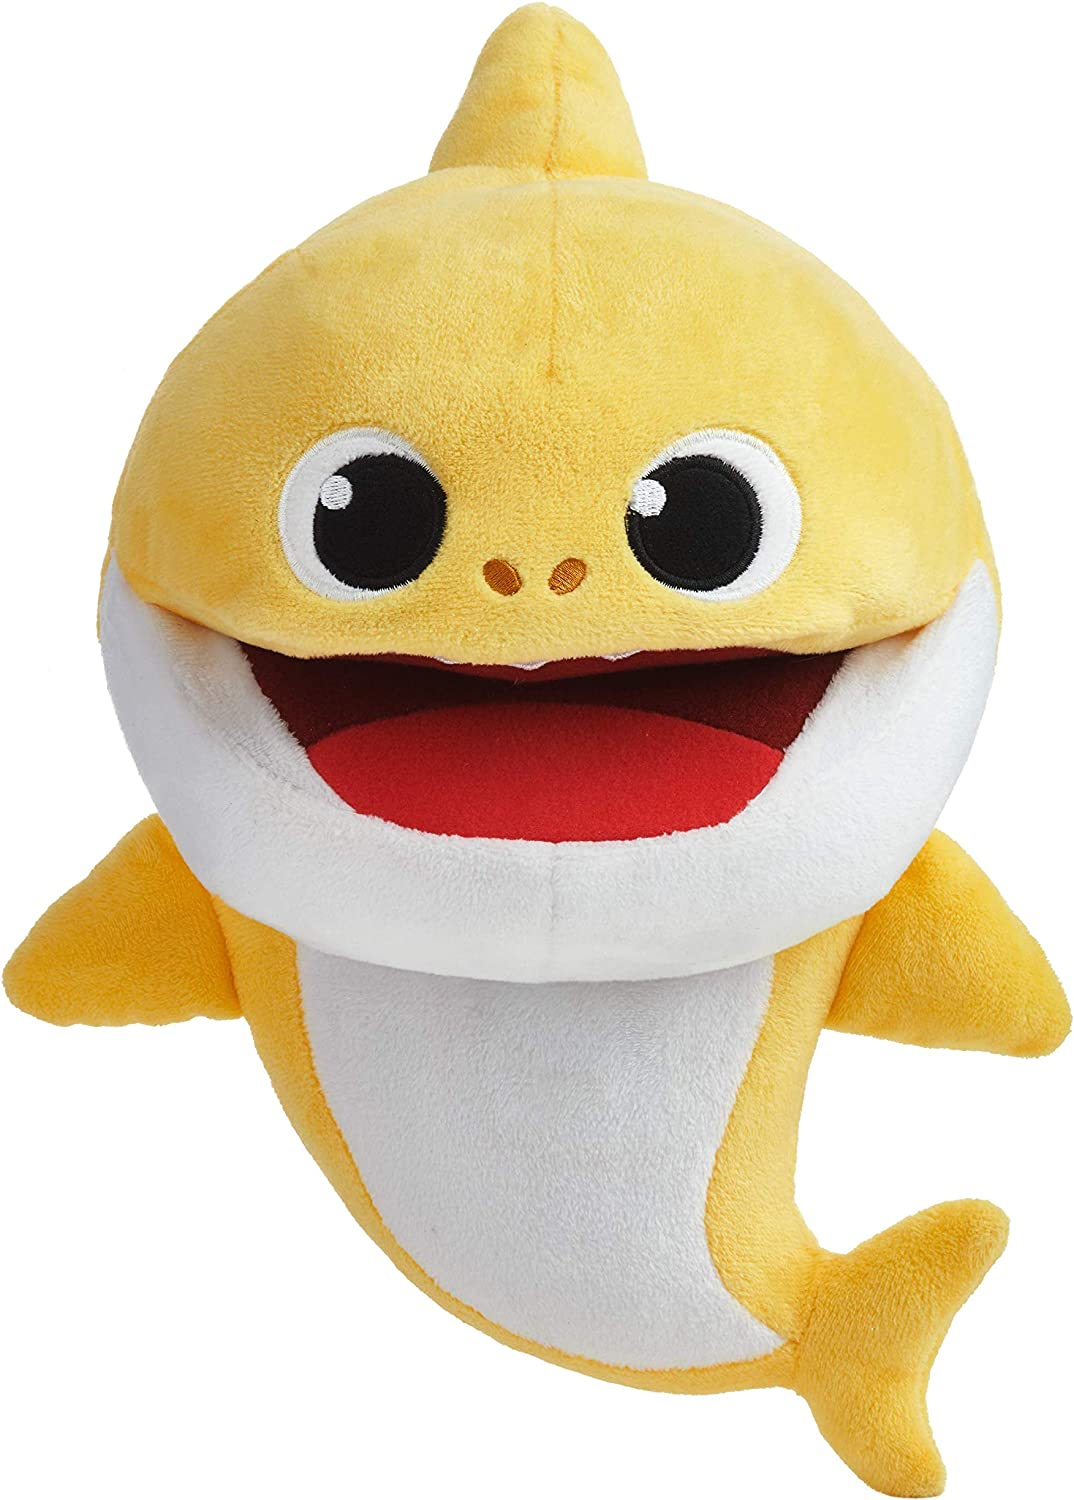 Wowwee Pinkfong Baby Shark Official Song Puppet With Tempo Control Baby Shark Interactive Preschool Plush Toy